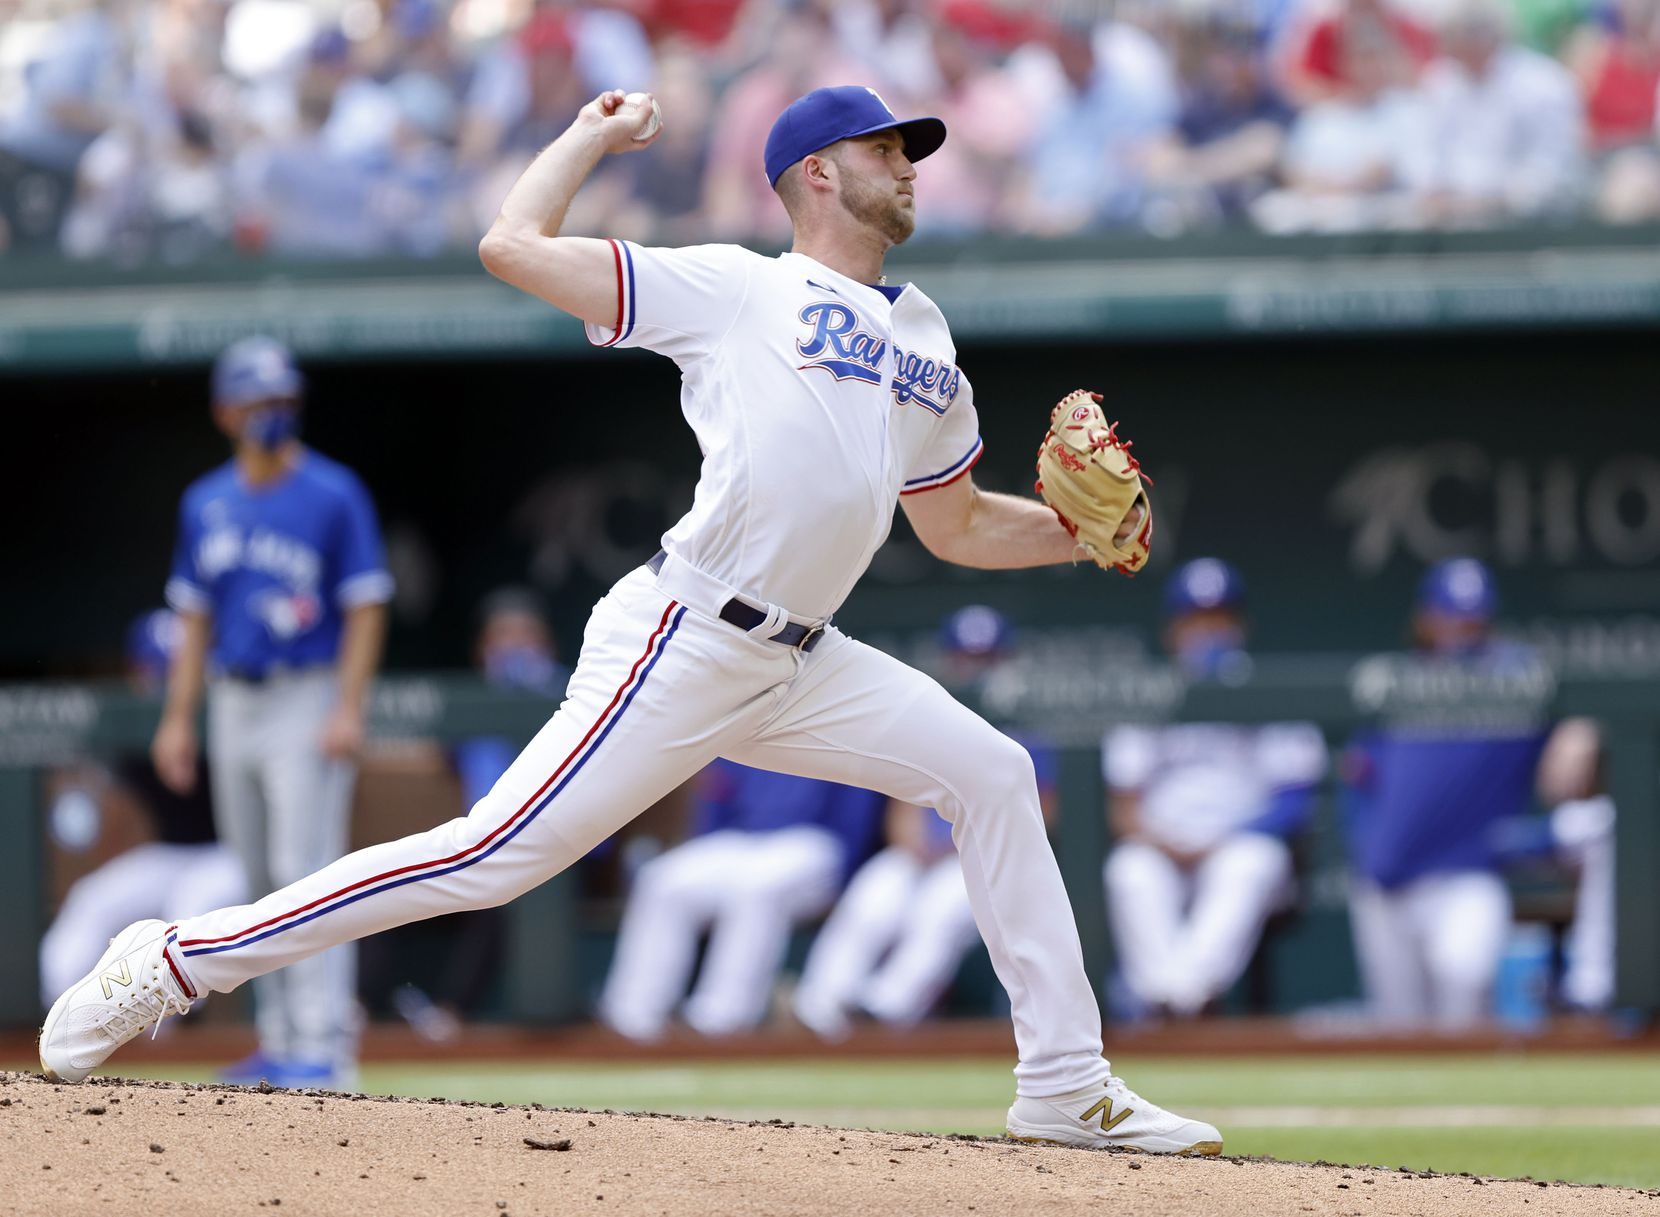 Texas Rangers starting pitcher Kyle Cody (54) throws against the Toronto Blue Jays in the fifth inning at Globe Life Field in Arlington, Monday, April 5, 2021. The Texas Rangers were facing the Toronto Blue Jays in their home opener. (Tom Fox/The Dallas Morning News)